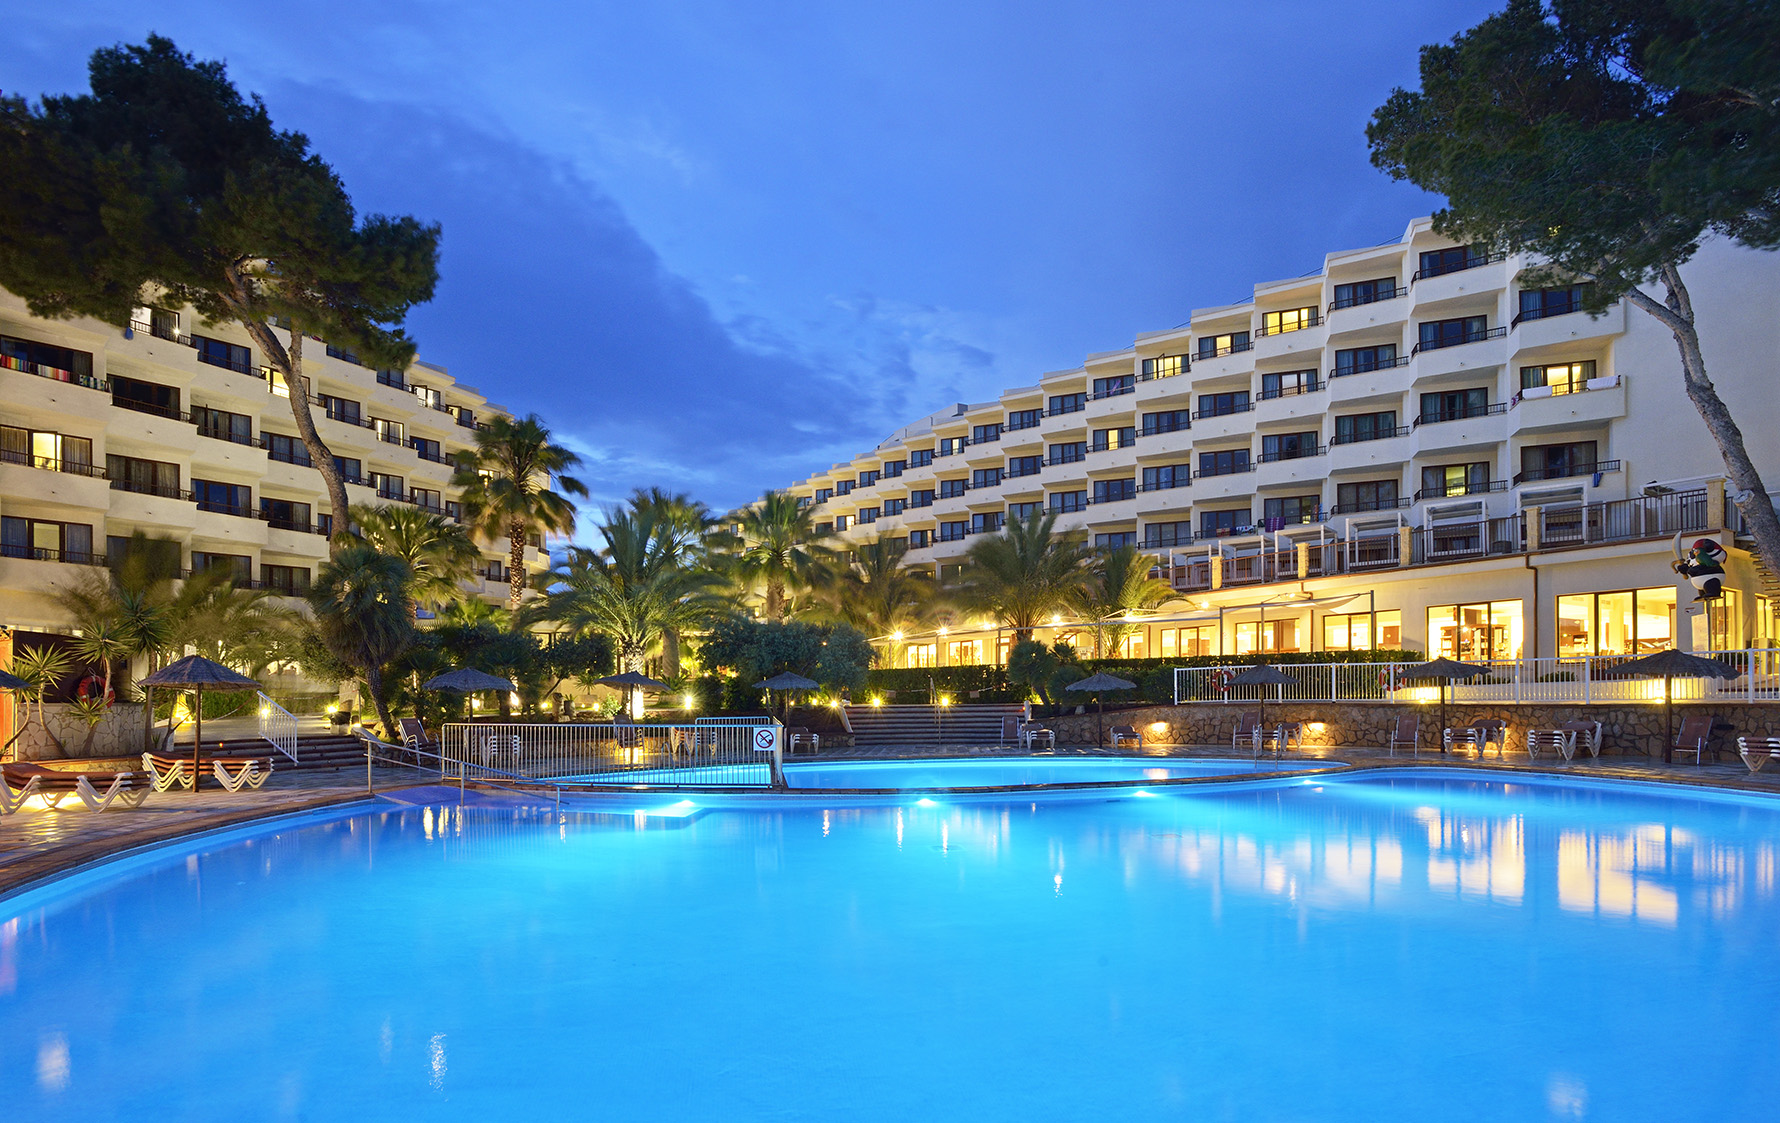 Holidays in Spain. Ibiza - an ideal place for a restless holiday